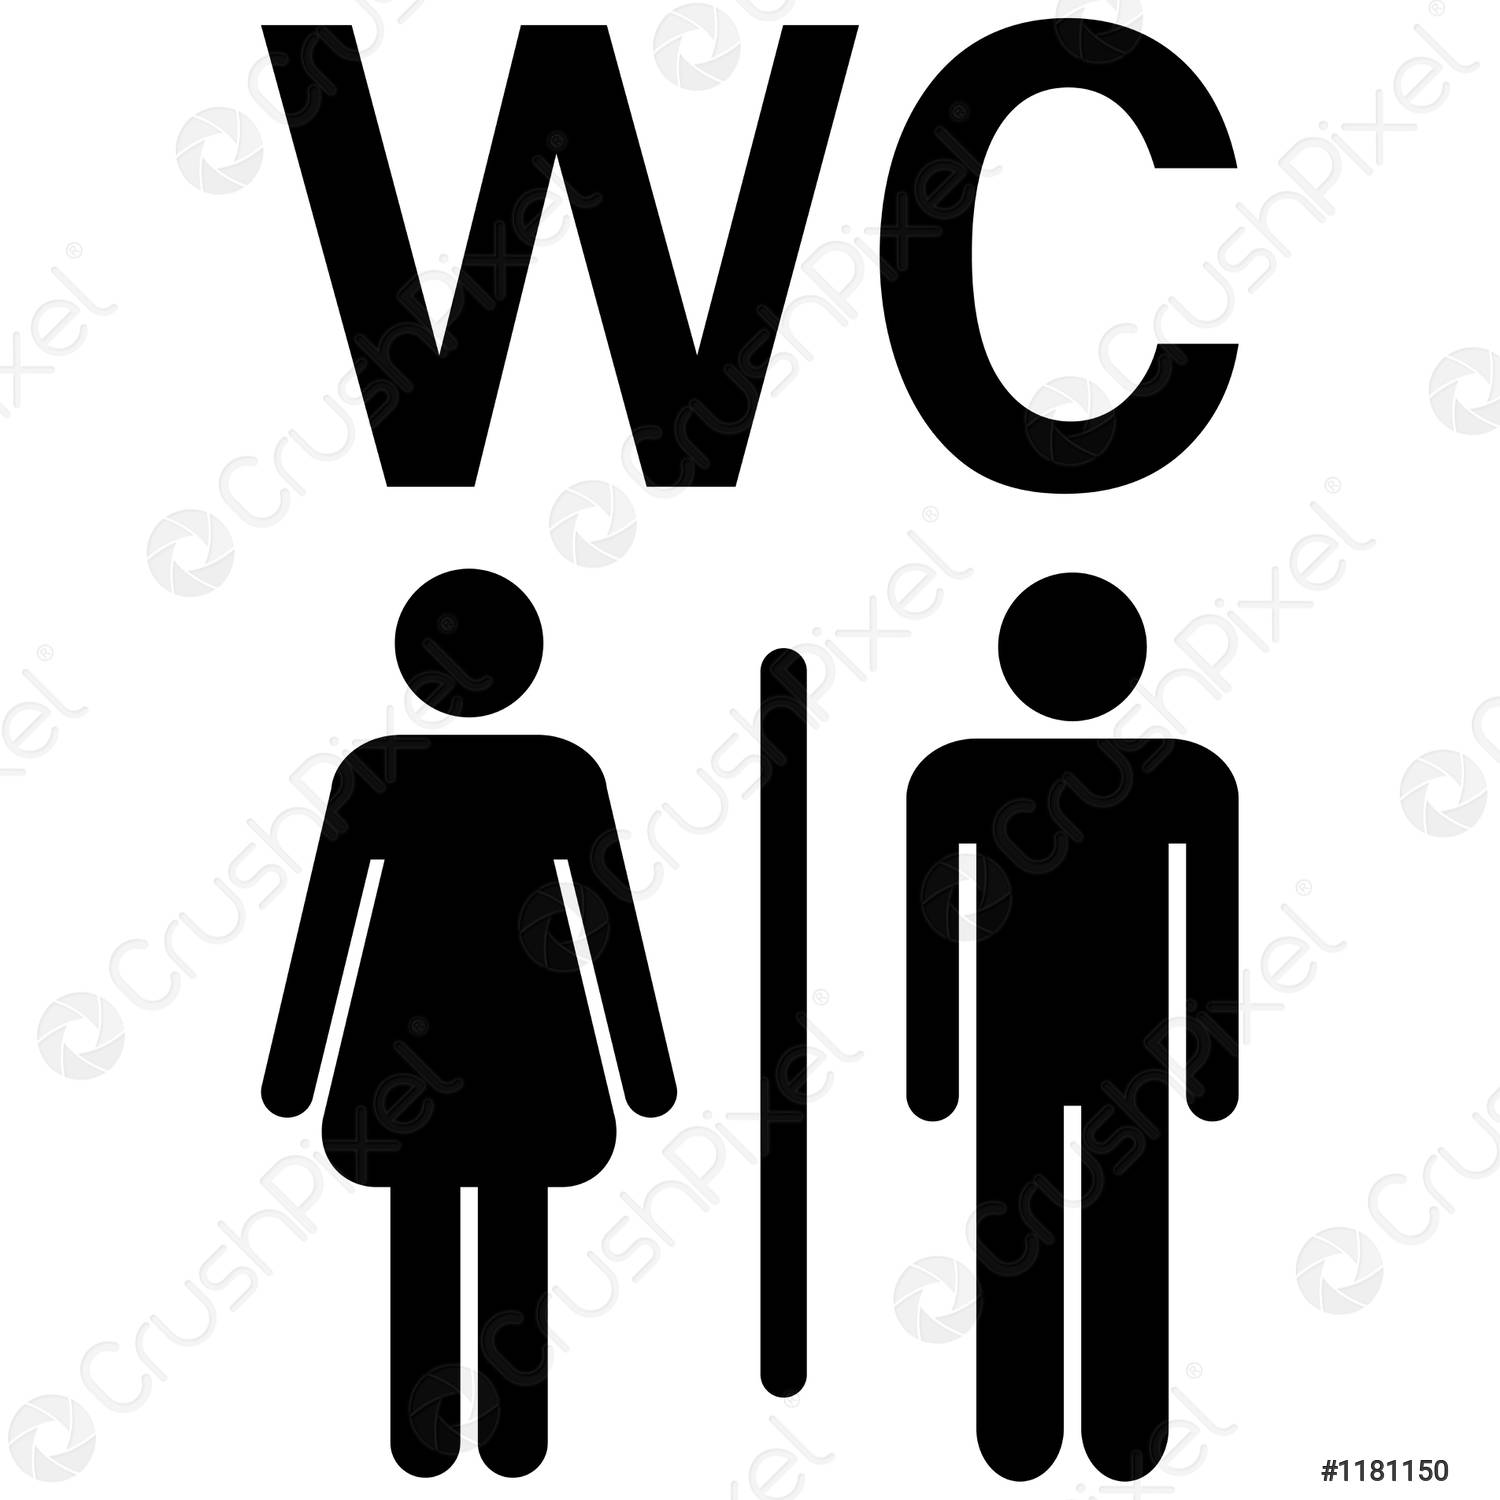 The WC..!